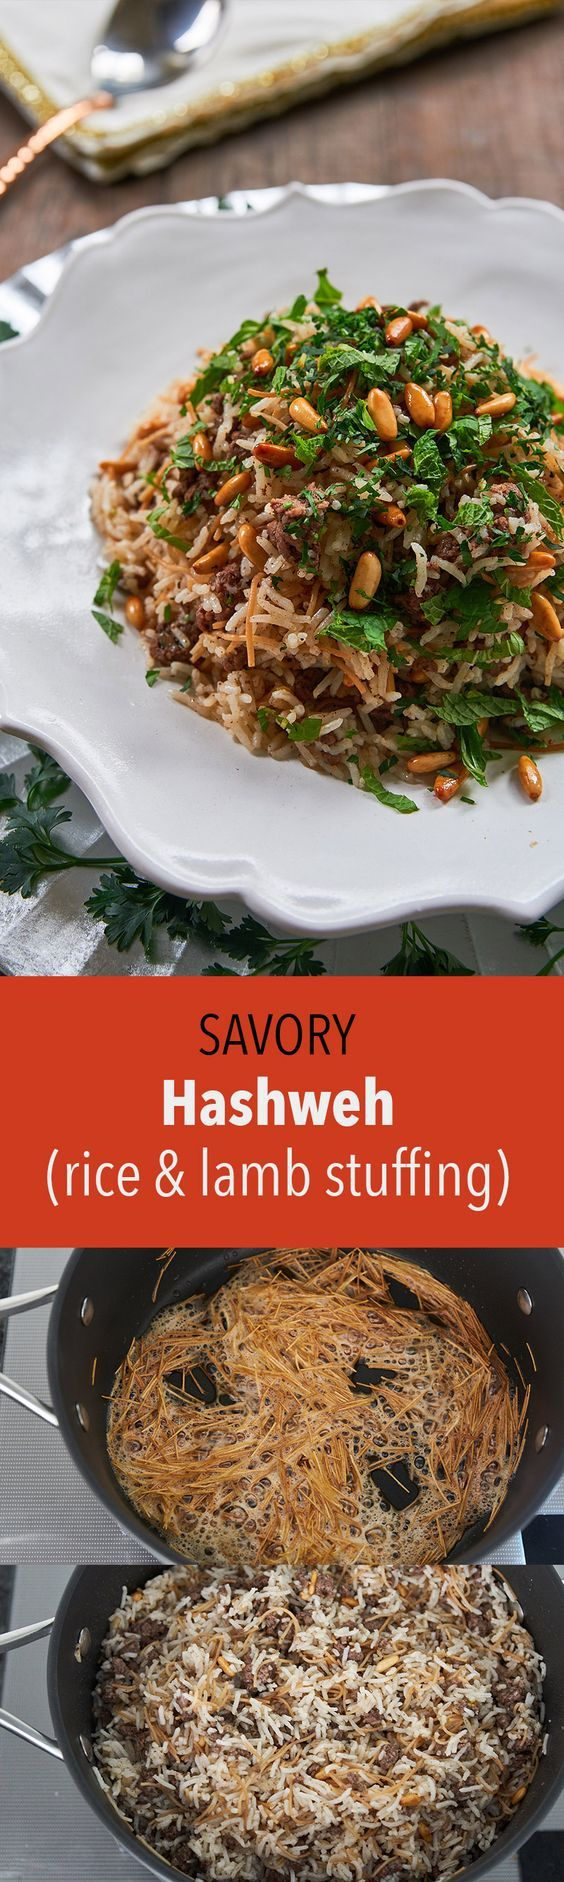 This easy Levantine classic comes together in half an hour and is loaded with ground lamb seasoned with sweet spices such as allspice, cinnamon and nutmeg.